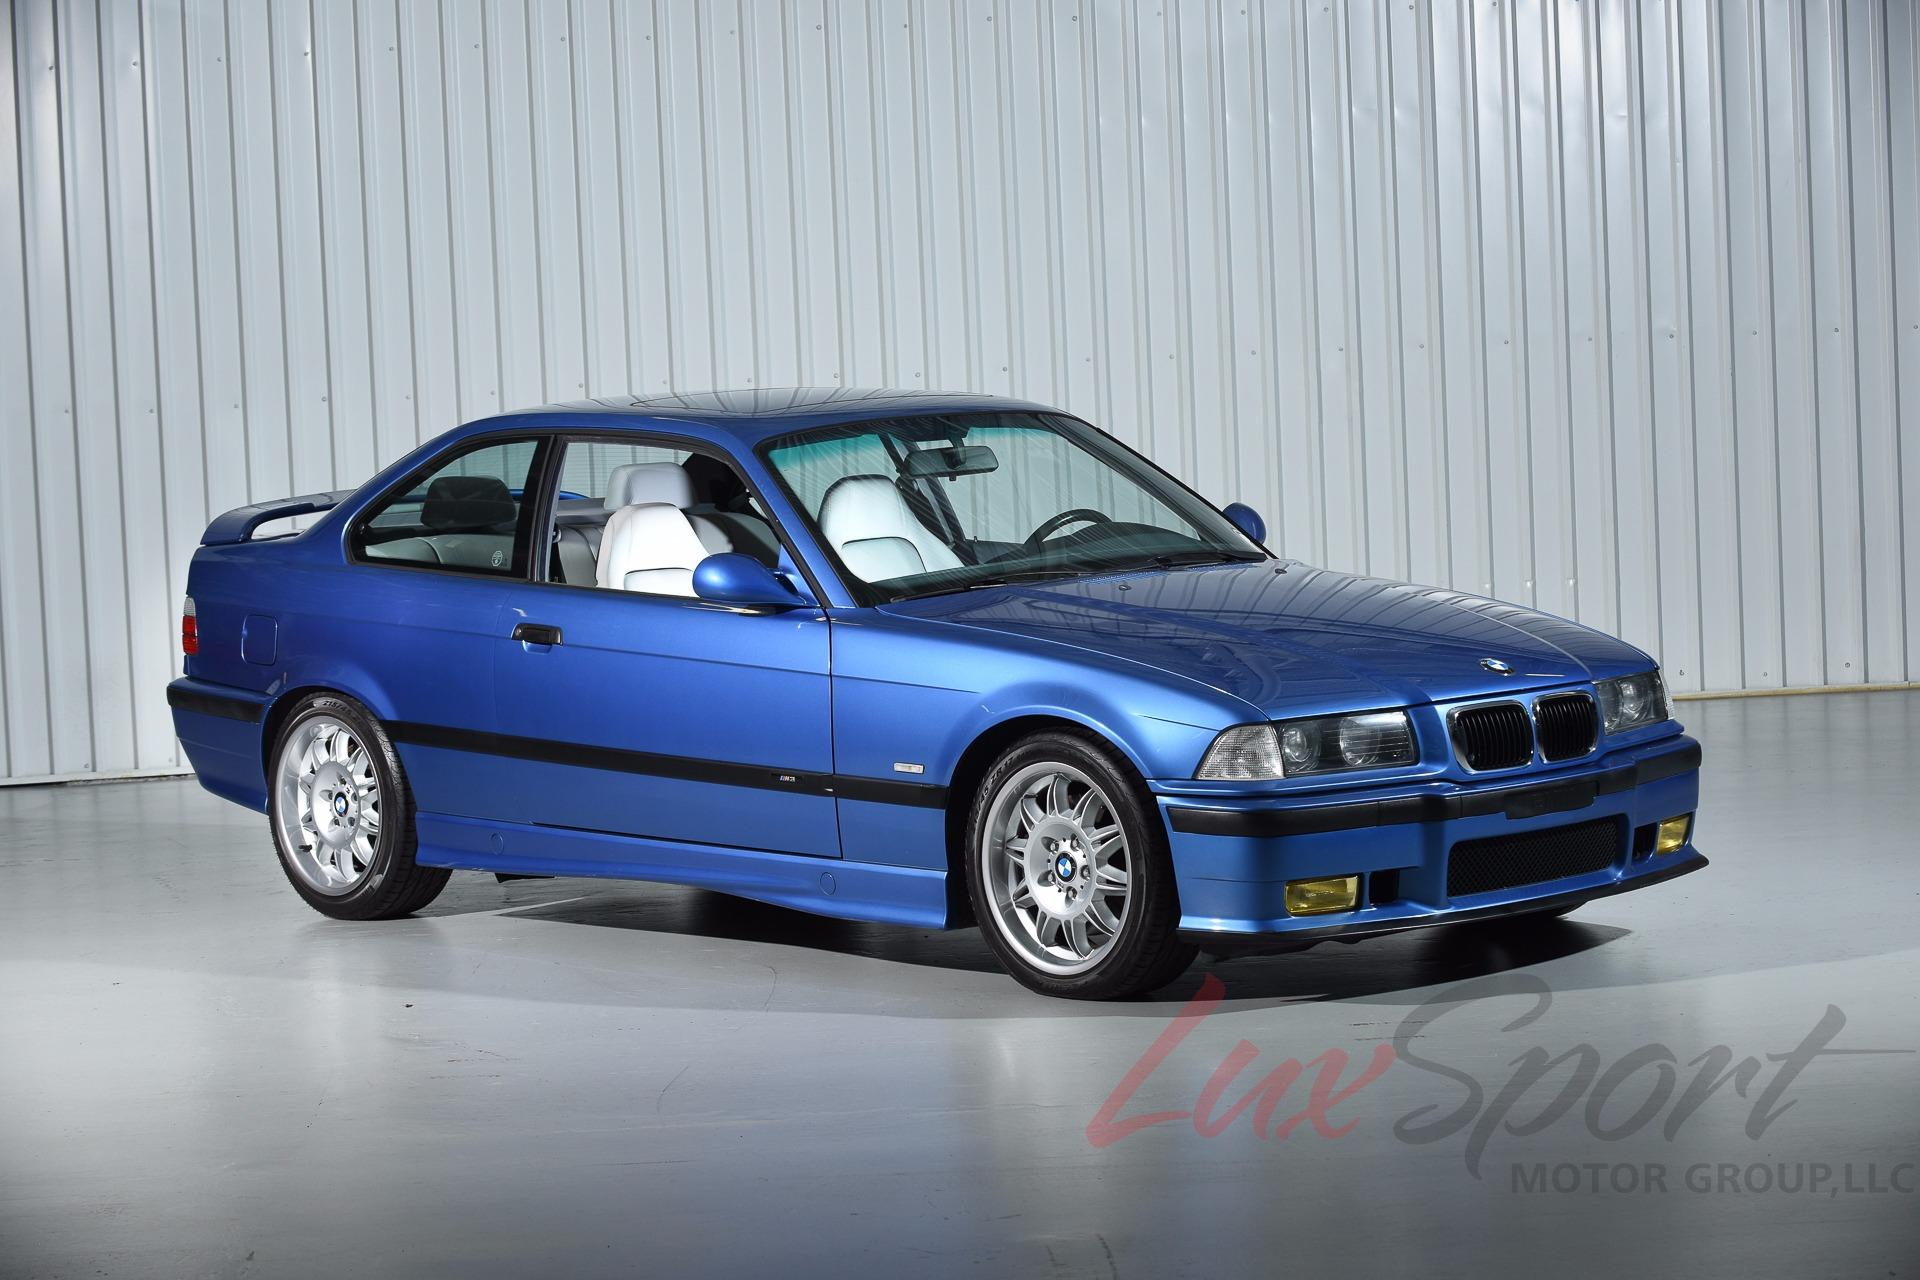 1999 bmw e36 m3 coupe stock 1999123 for sale near new hyde park ny ny bmw dealer. Black Bedroom Furniture Sets. Home Design Ideas